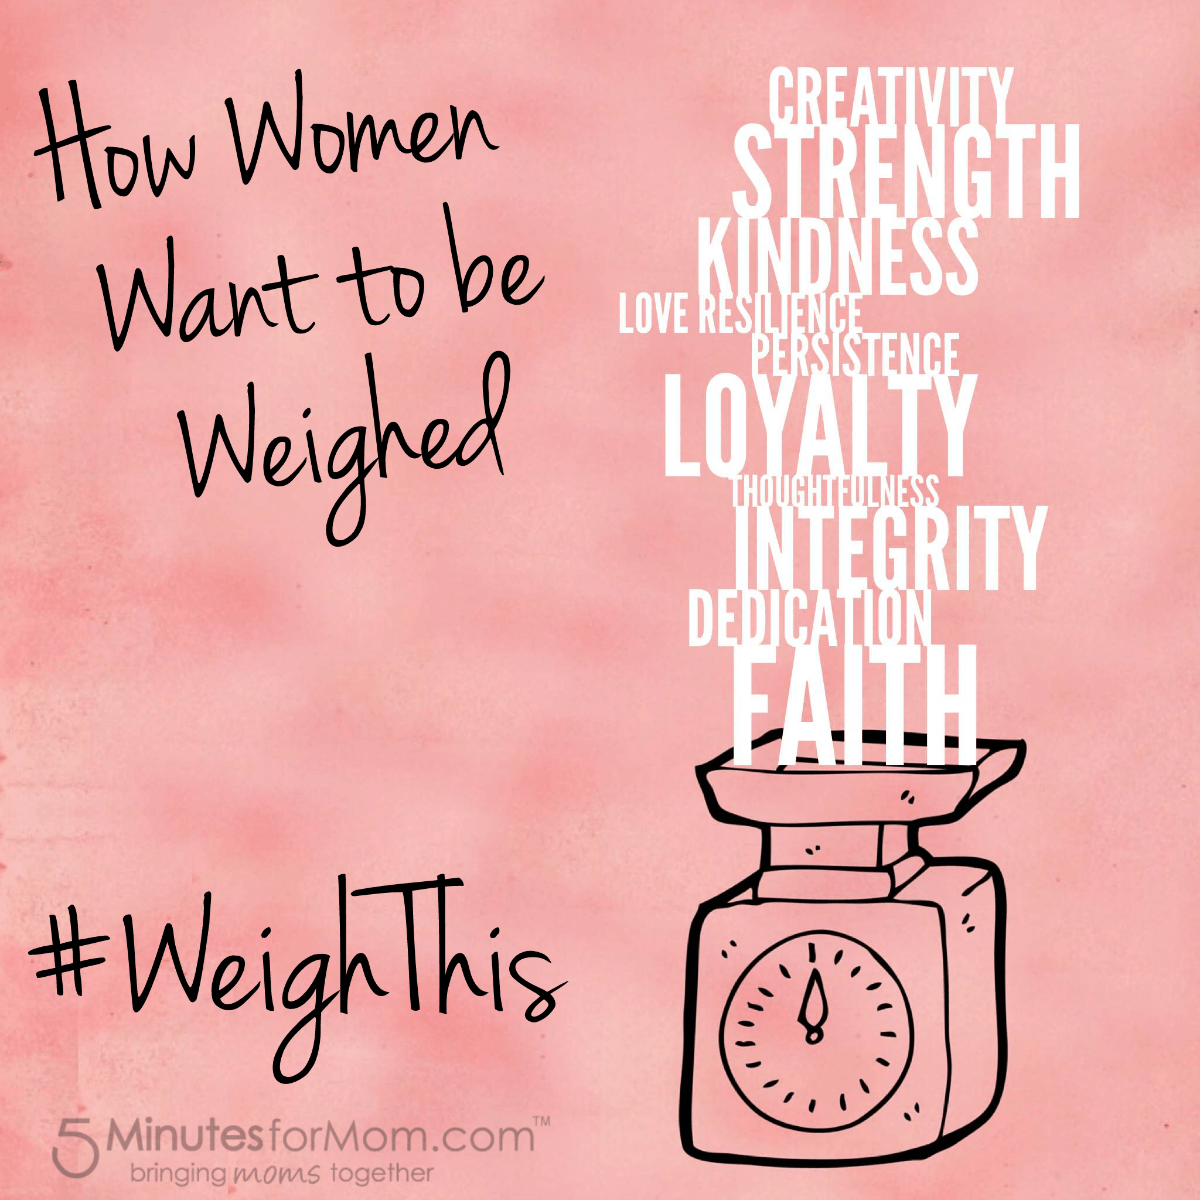 How Women Want to be Weighed - WeighThis